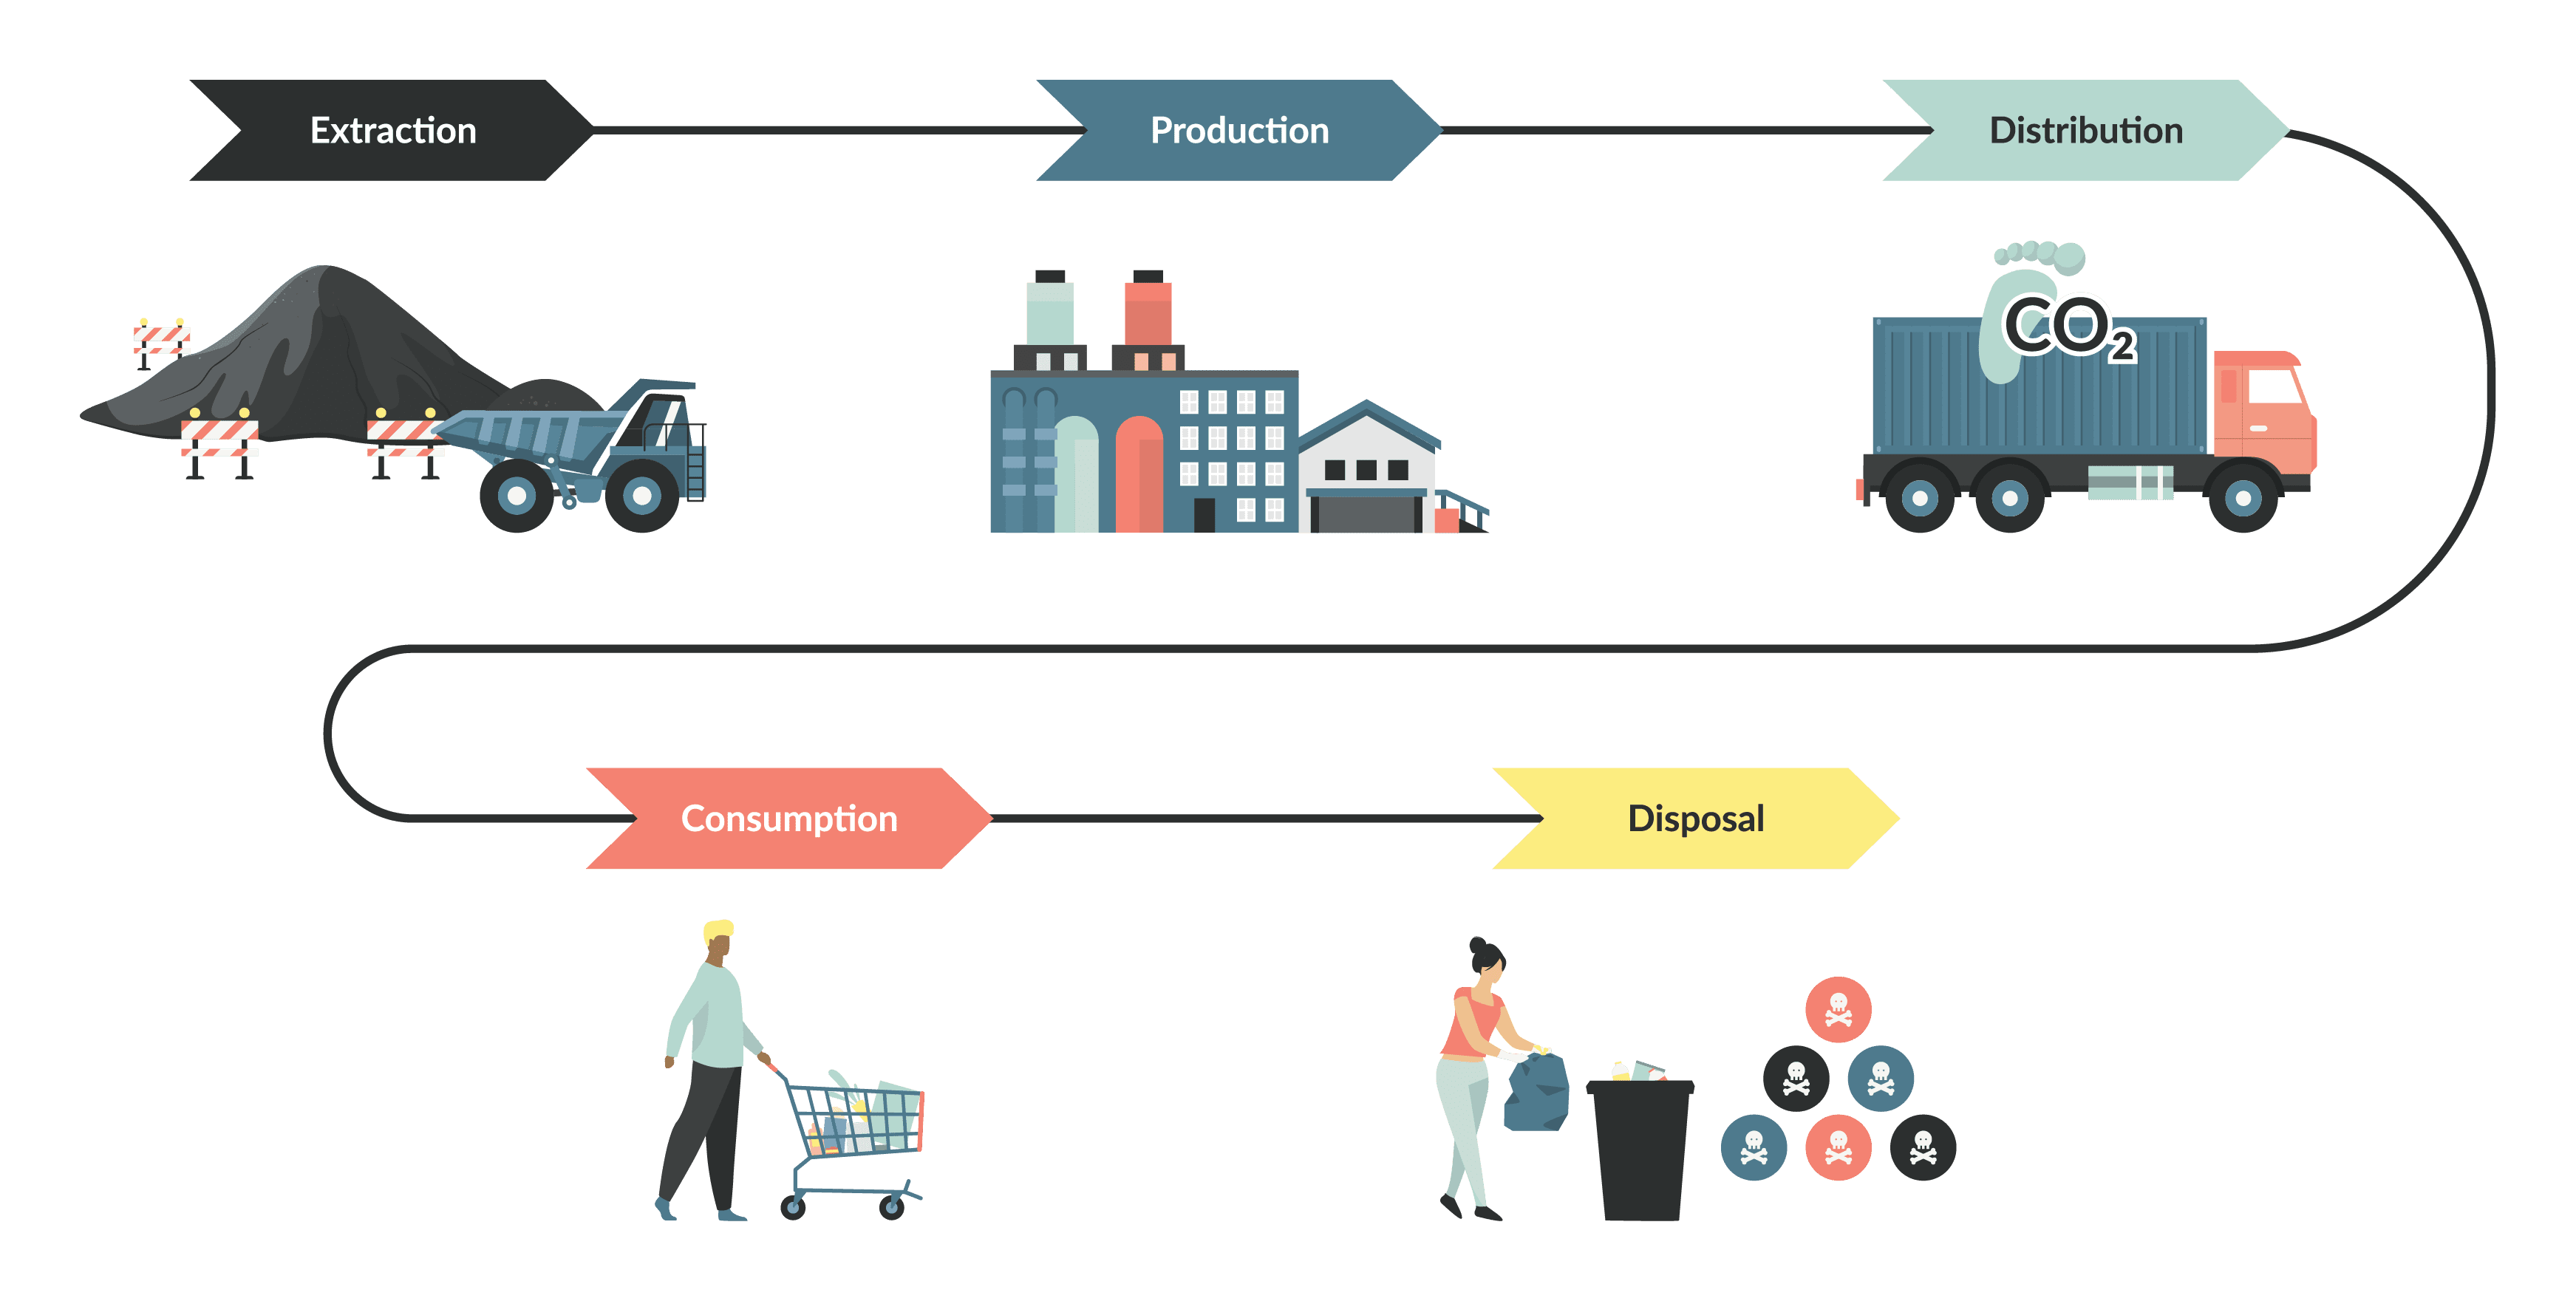 Showing the journey from extraction to production, to distribution, to consumption and disposal of non-renewable energy sources